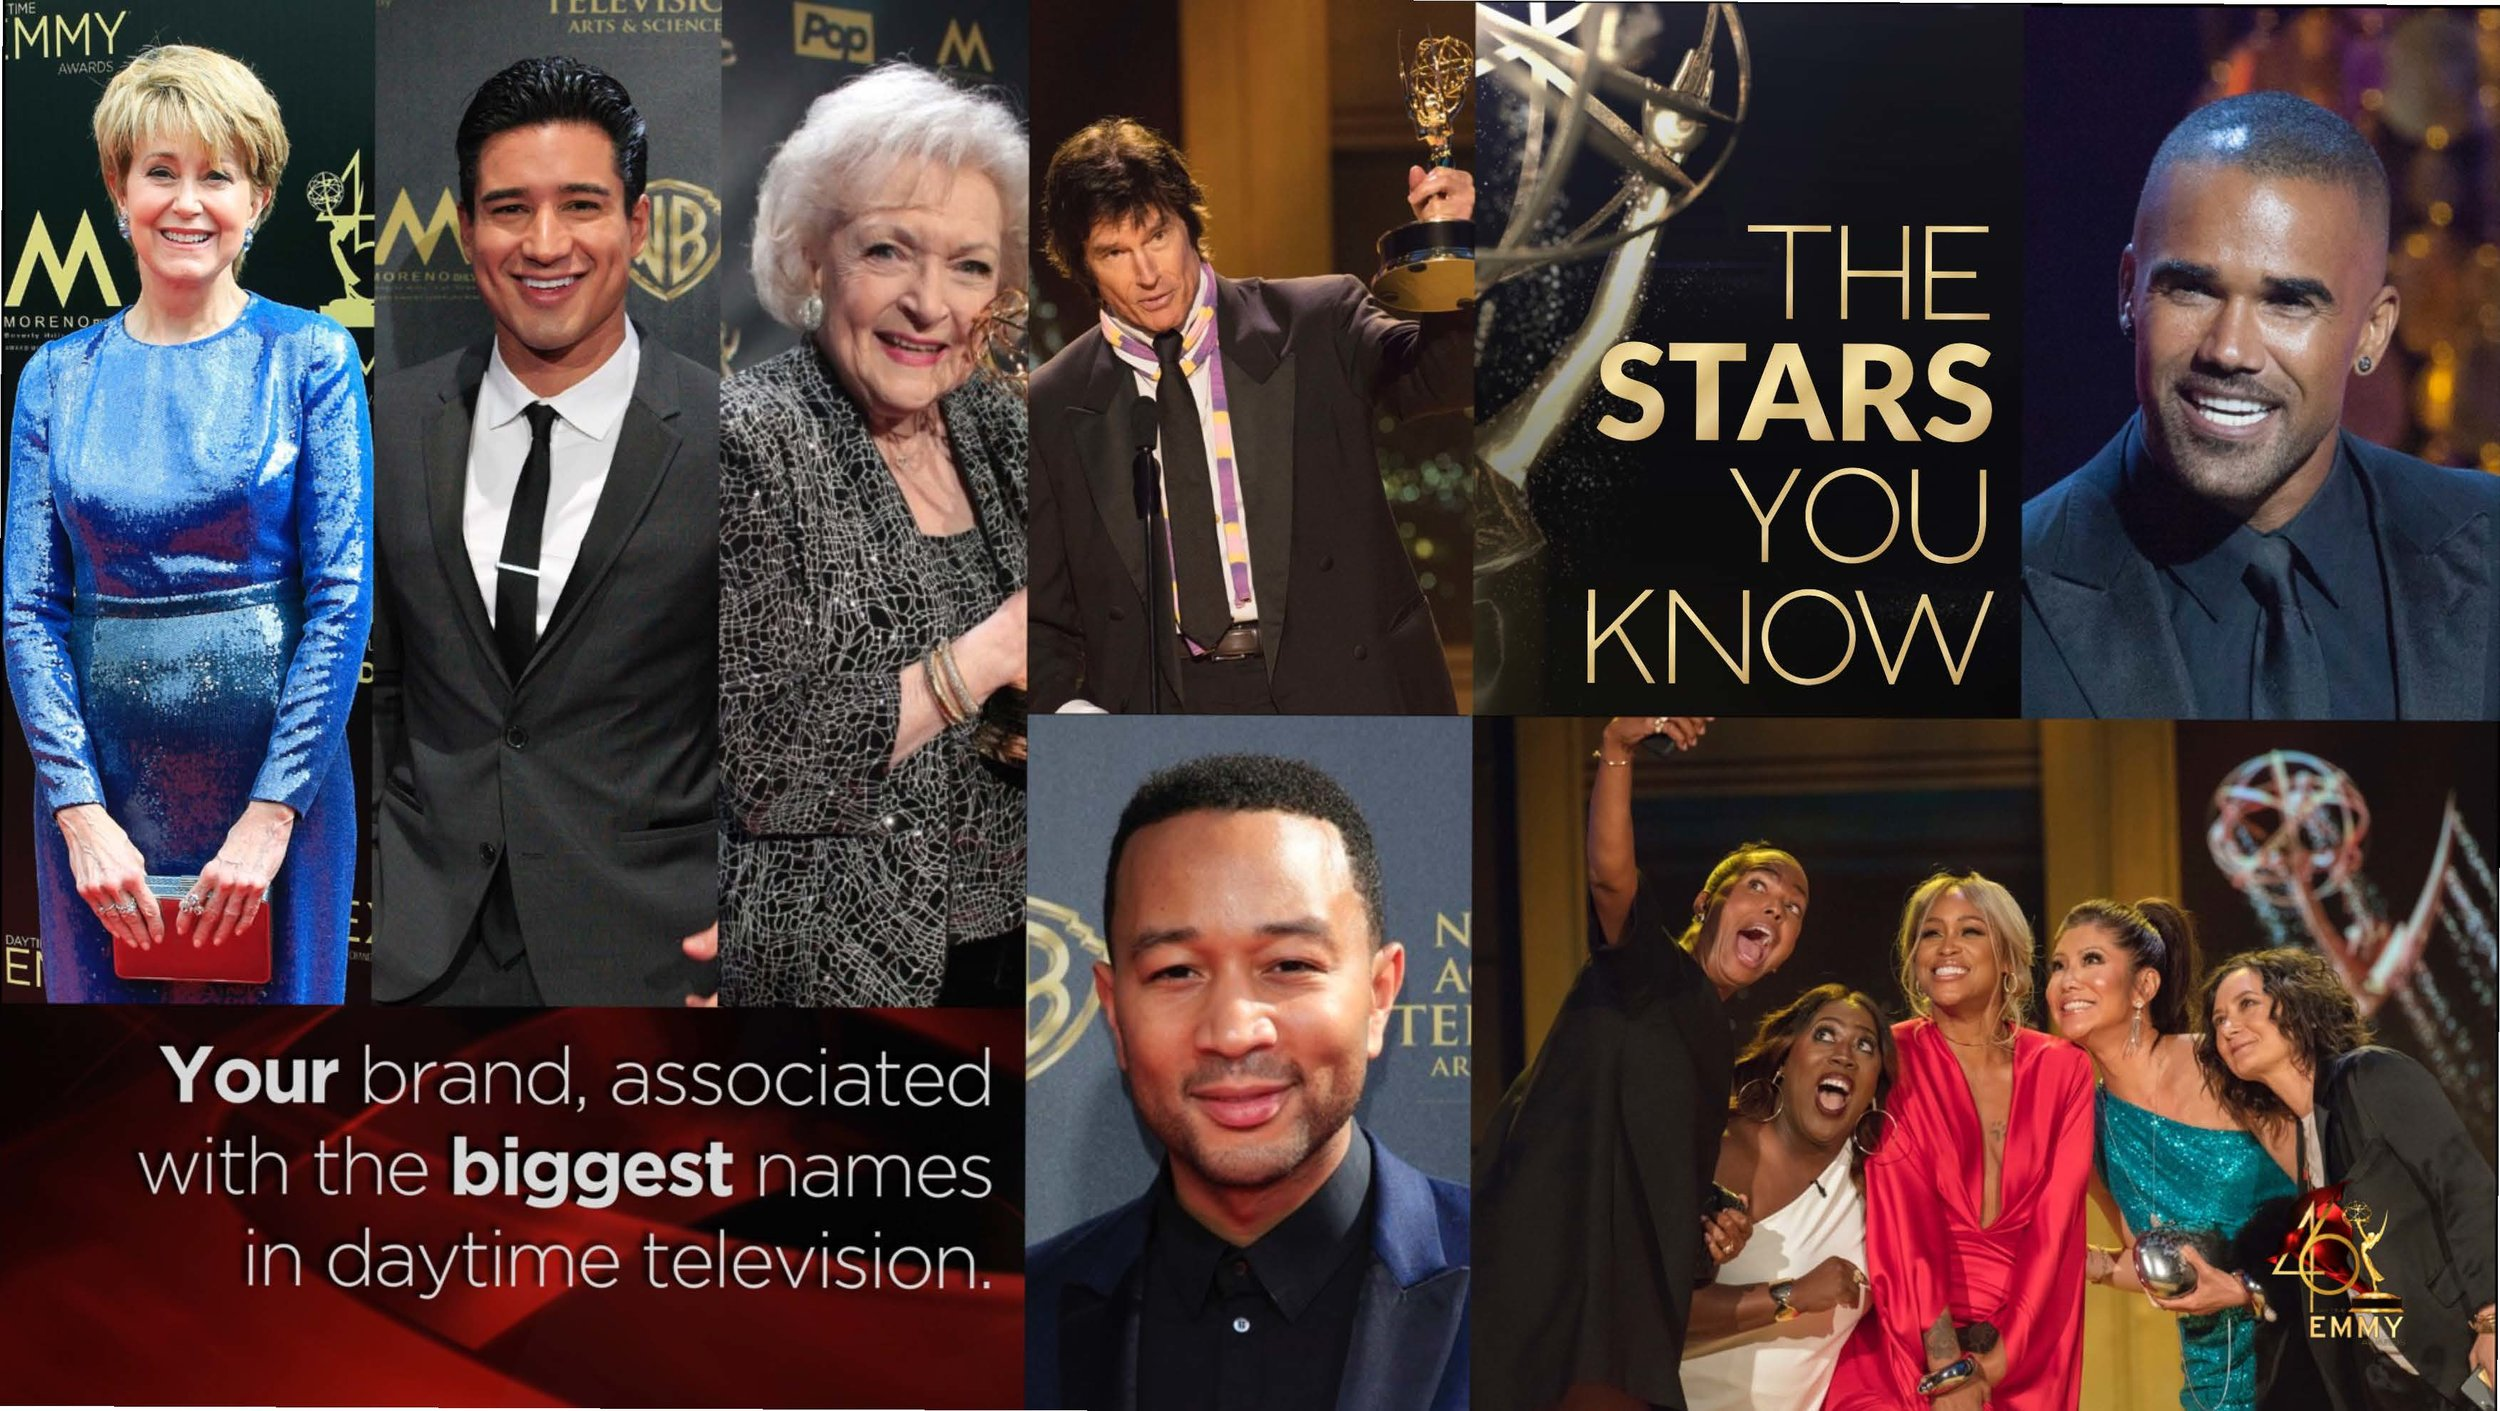 emmys web home pages_Page_2.jpg